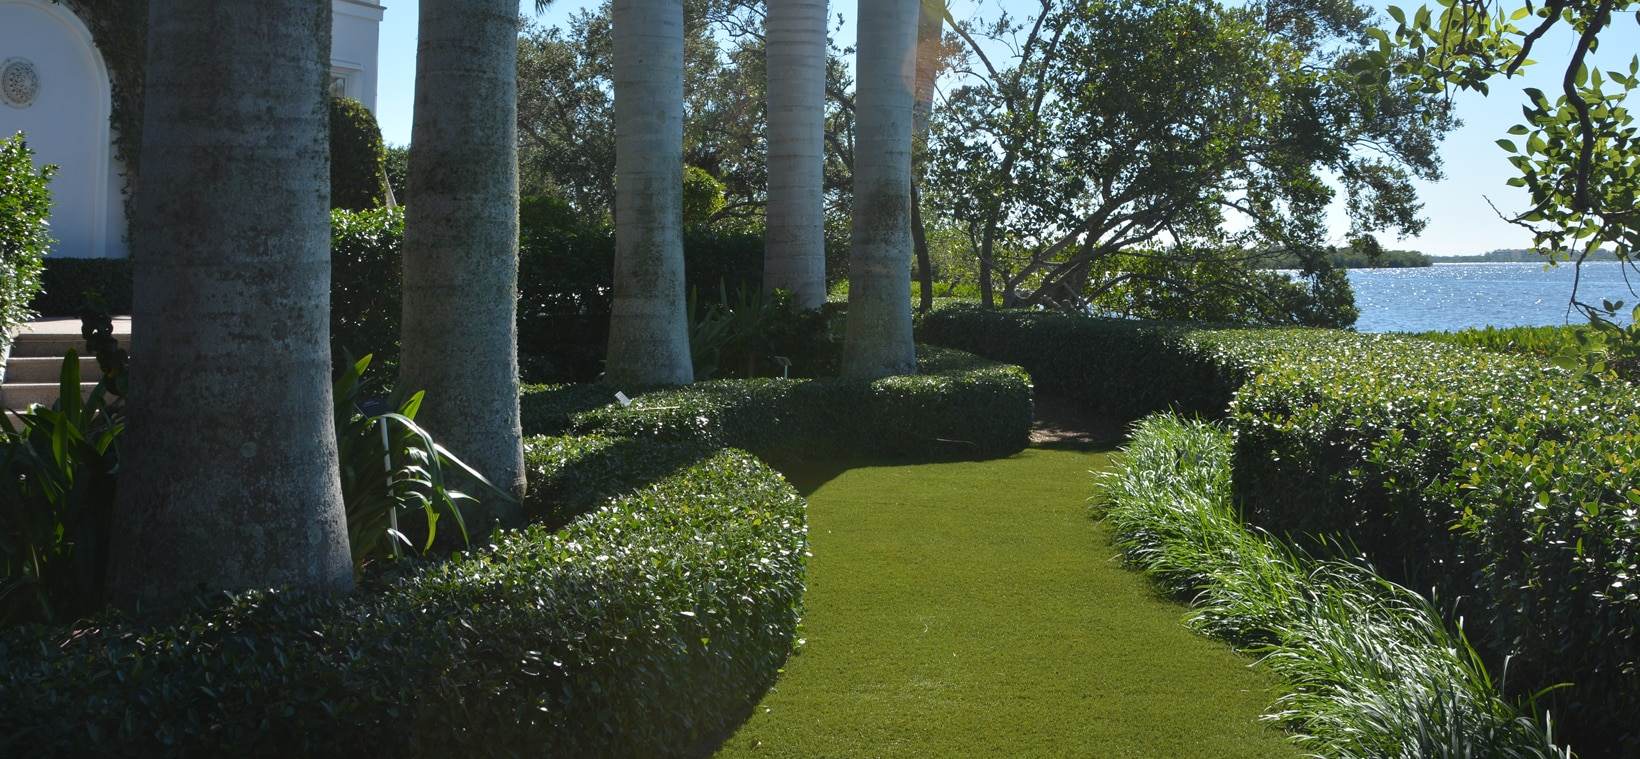 Aiello Landscape synthetic turf pathway